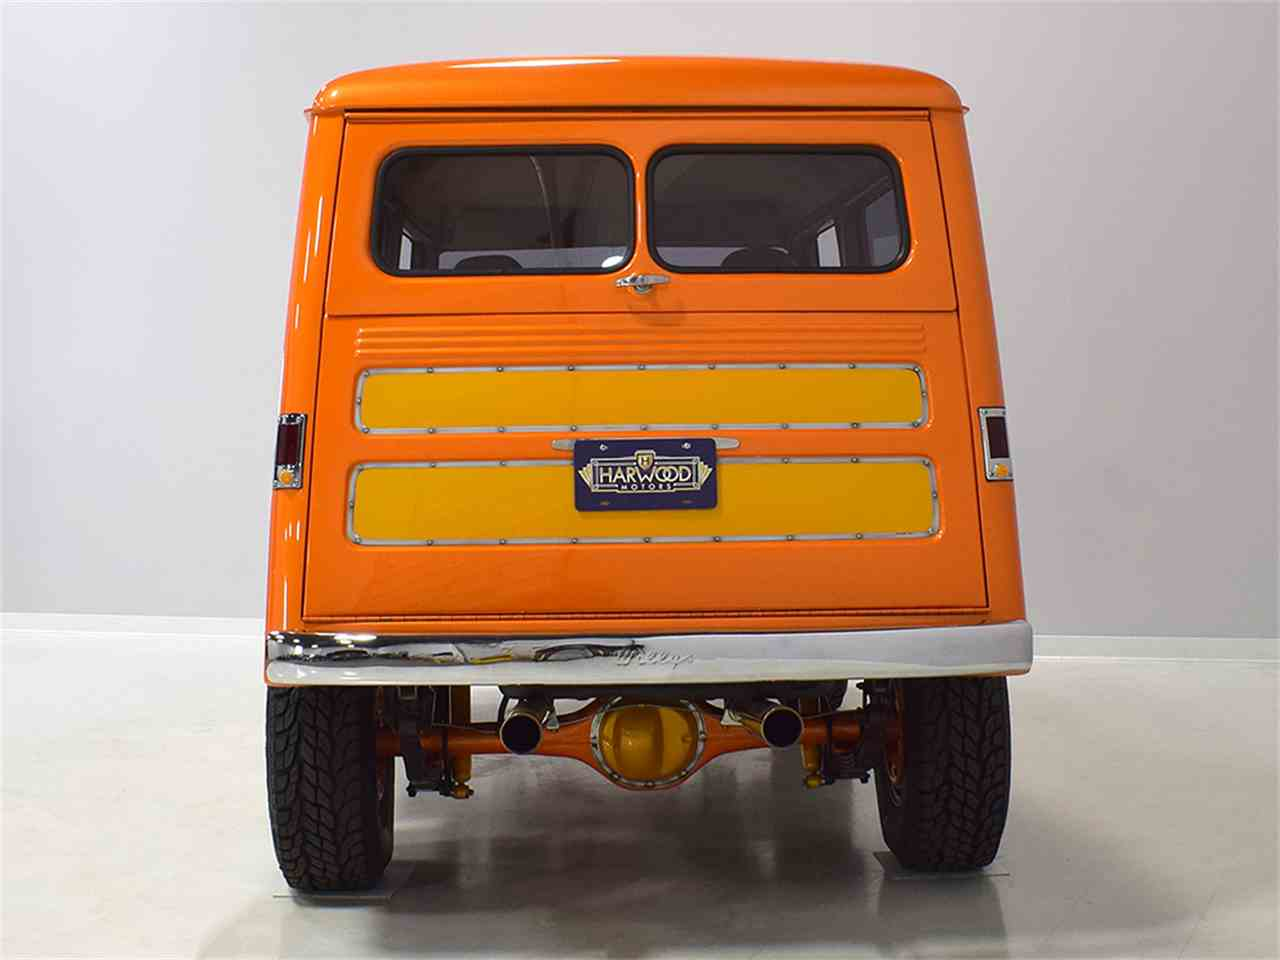 Large Picture of '54 Willys Utility Wagon Offered by Harwood Motors, LTD. - MA30